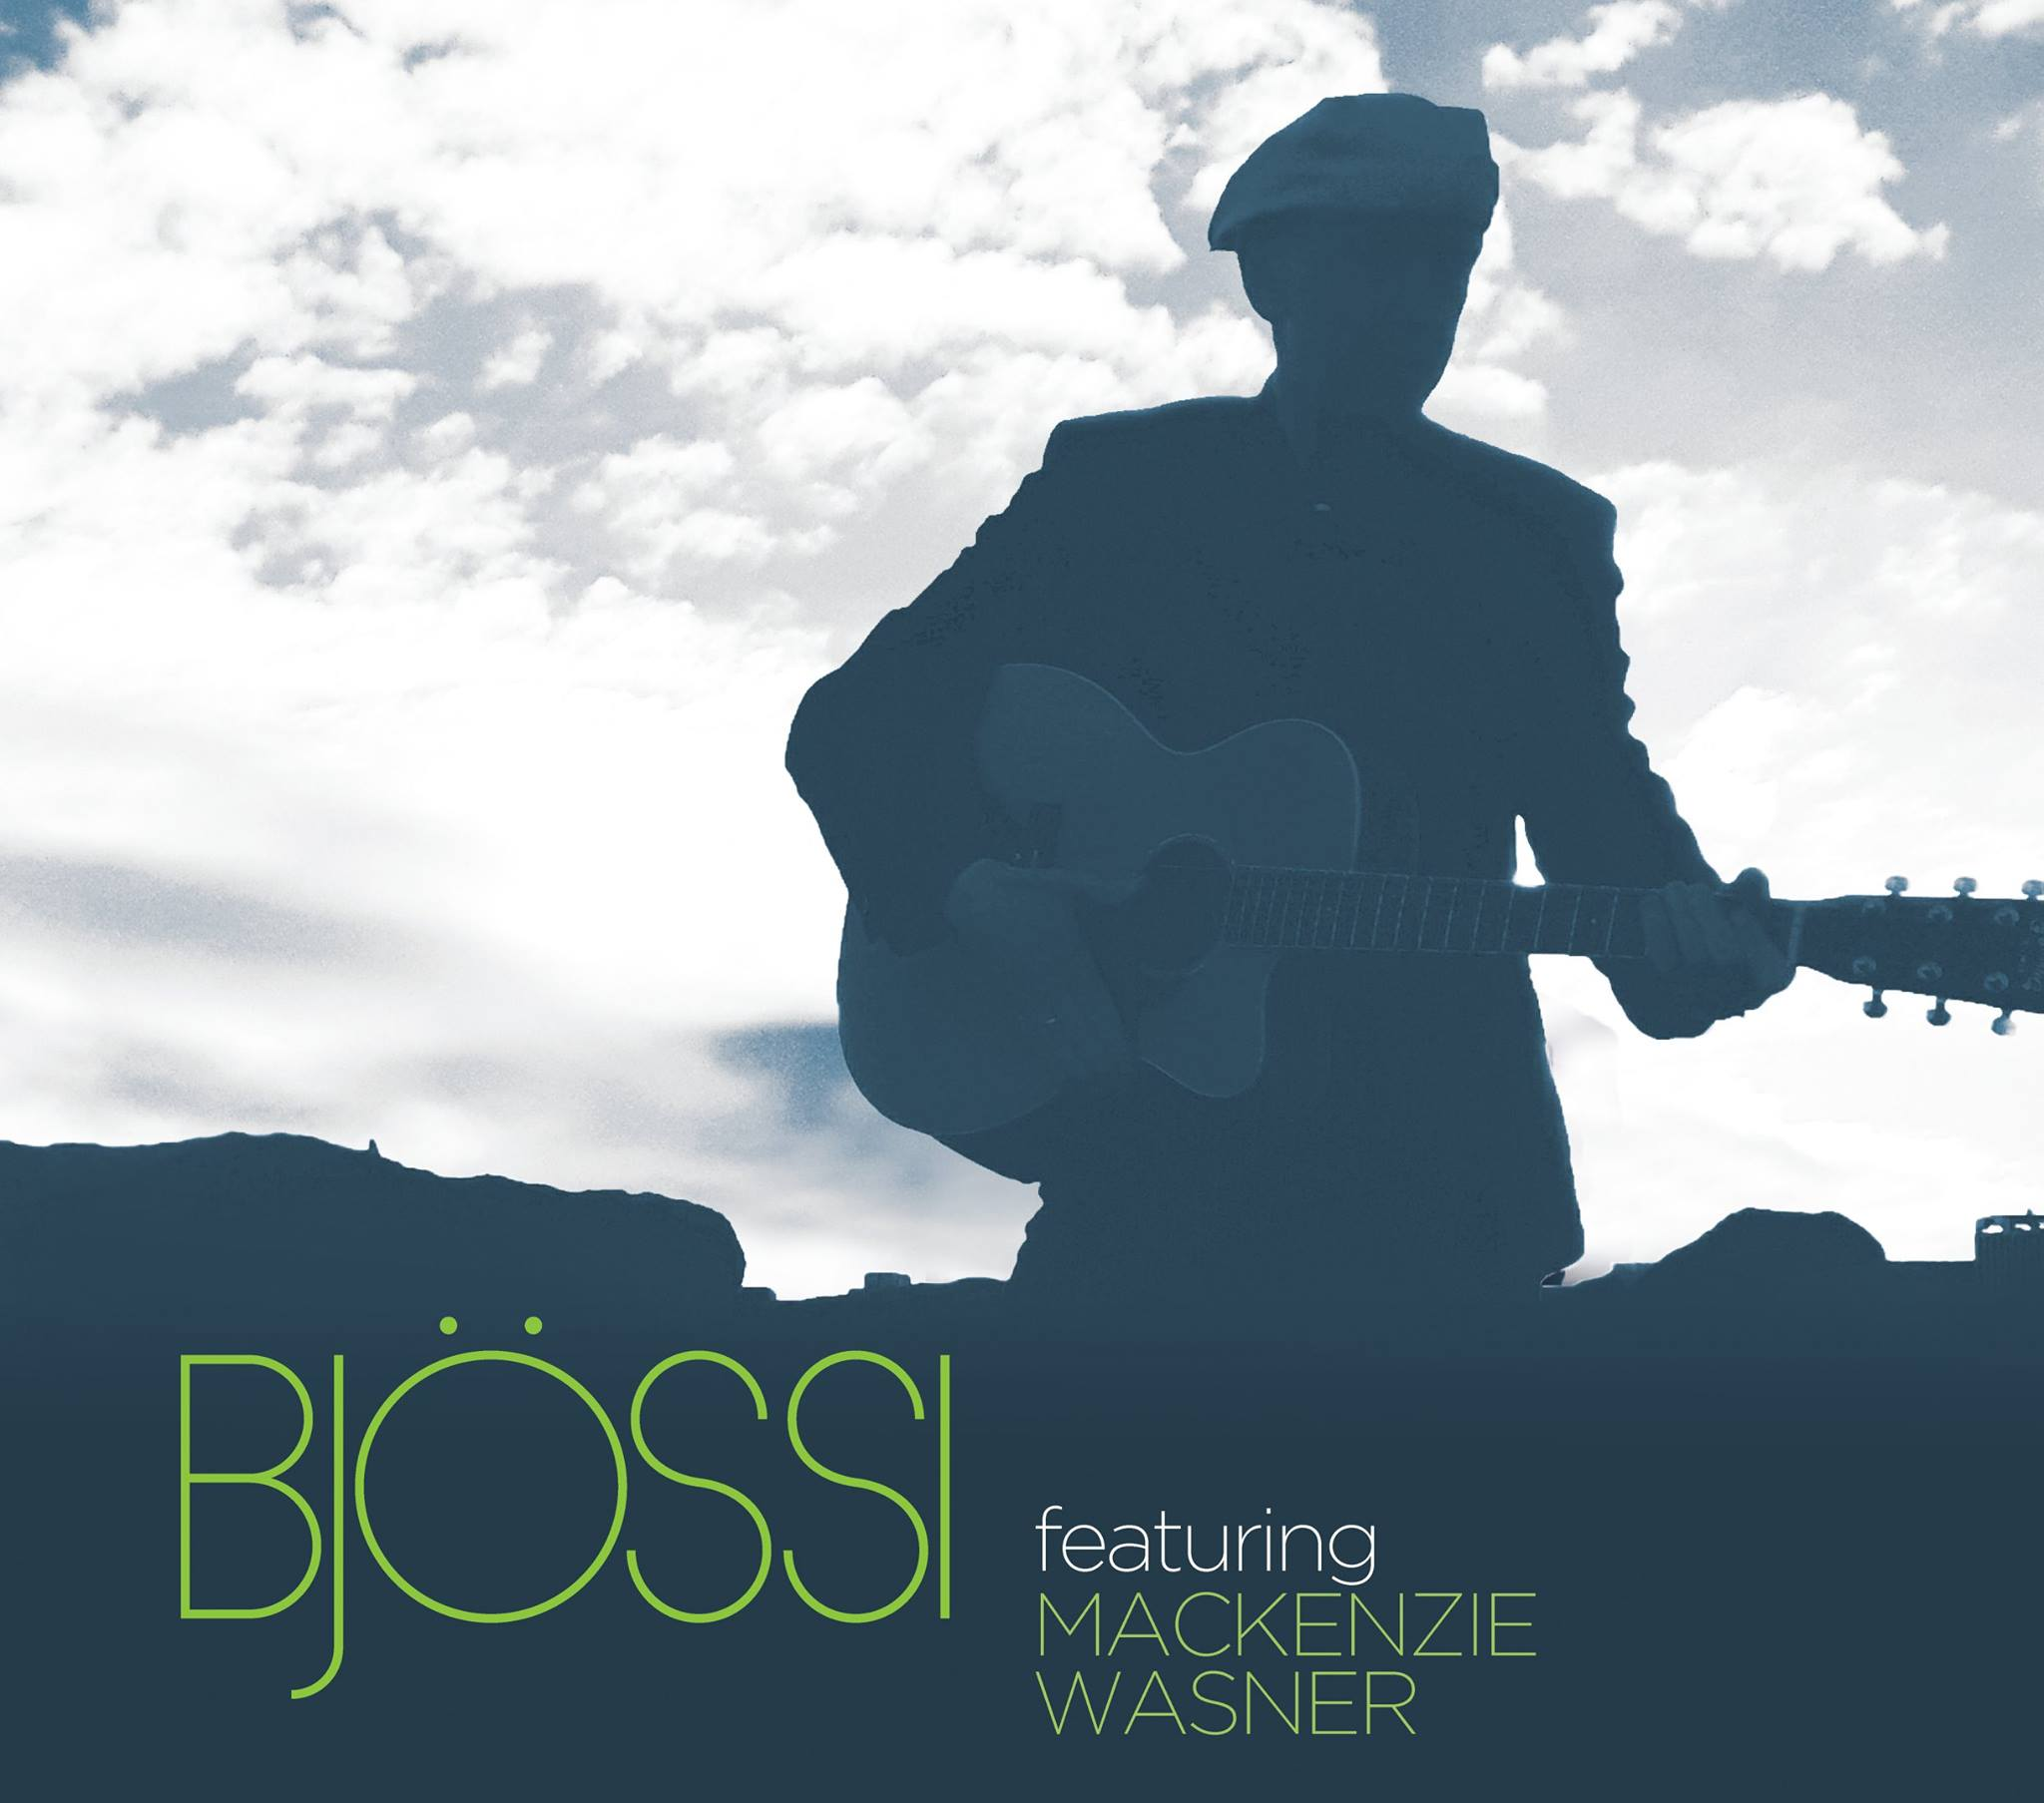 This new album by Björn Thoroddsen,  Bjössi featuring Mackenzie Wasner ,is now available worldwide in digital download (MP3 and FLAC format)and on CD via cdbaby.com (Link: https://store.cdbaby.com/cd/bjossithor )  The album is produced by the legendary guitarist Robben Ford and features the amazing vocals of Nashville-based country singer Mackenzie Wasner. The album has a special appearance by Australian guitar maestro Tommy Emmanuel and some of the finest session players in Nashville play on the record.  The songs are written by Björn Thoroddsen and Robben Ford in addition to two songs from the Bob Dylan archives.  Produced by Robben Ford  The Musicians  Björn Thoroddsen: 6 and 12 String Guitars Mackenzie Wasner: Lead Vocal Robben Ford: Guitars, Piano, Organ Brian Allen: Double Bass Tammy Rogers: Violin Jerry Douglas: Dobro, Lap Steel, Guitar Wes Little: Percussion Laurie Wheeler: Backing Vocal Steinunn Erla Thoroddsen: Backing Vocal Tommy Emmanuel: Special Guest, Acoustic Guitar